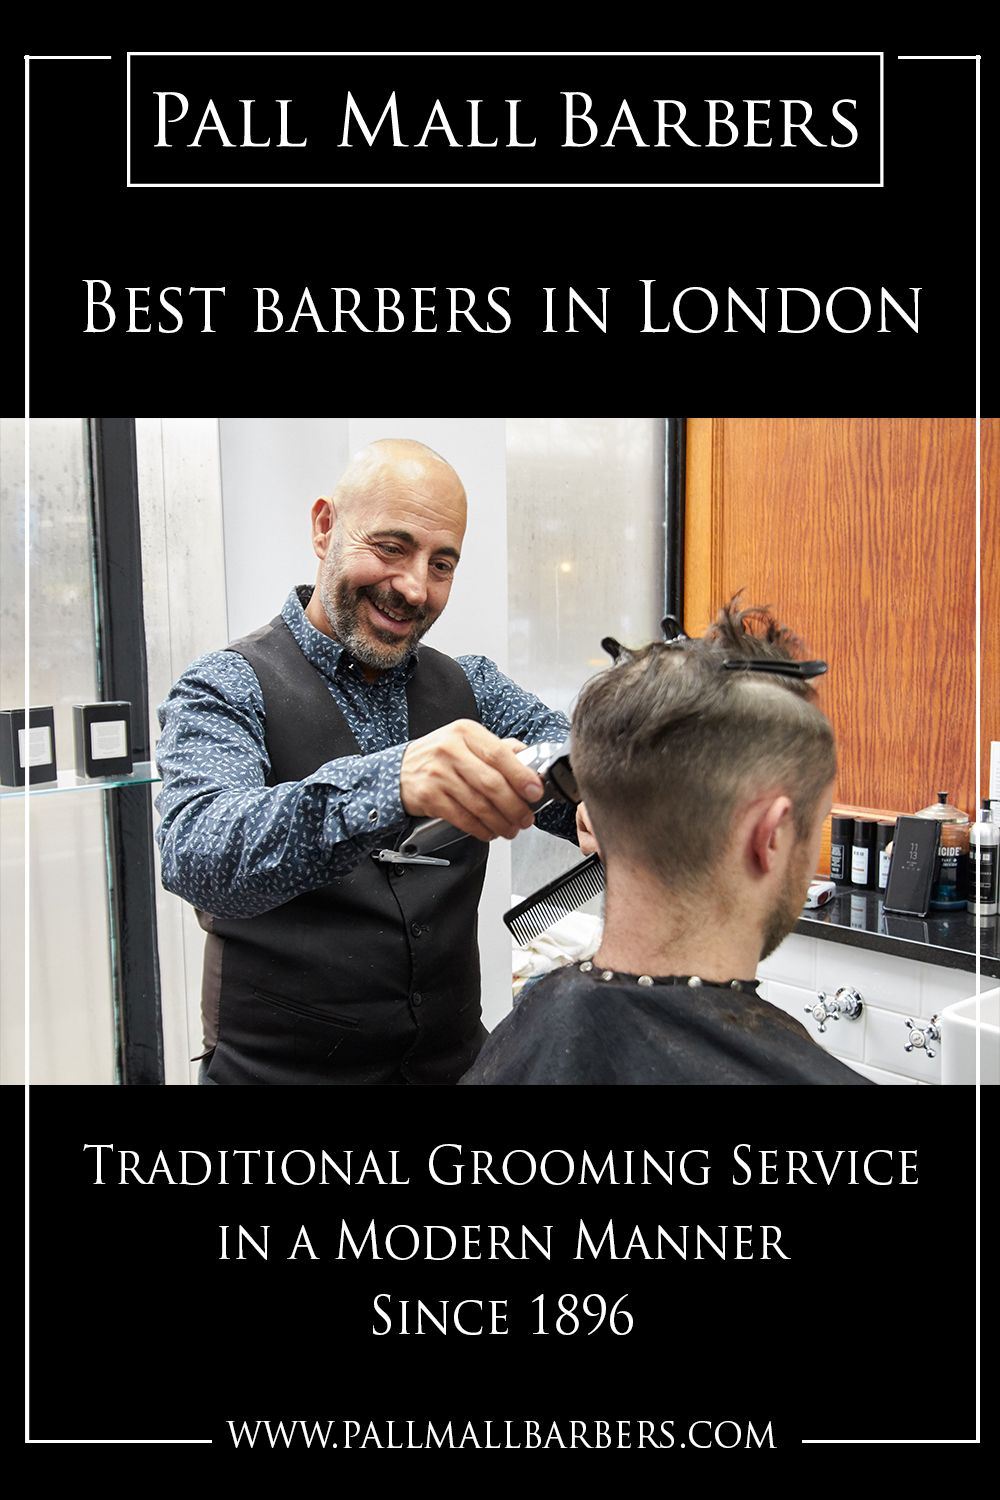 Pin By Pall Mall Barbers On Barbershop In London Best Barber Best Barber Shop Barber London